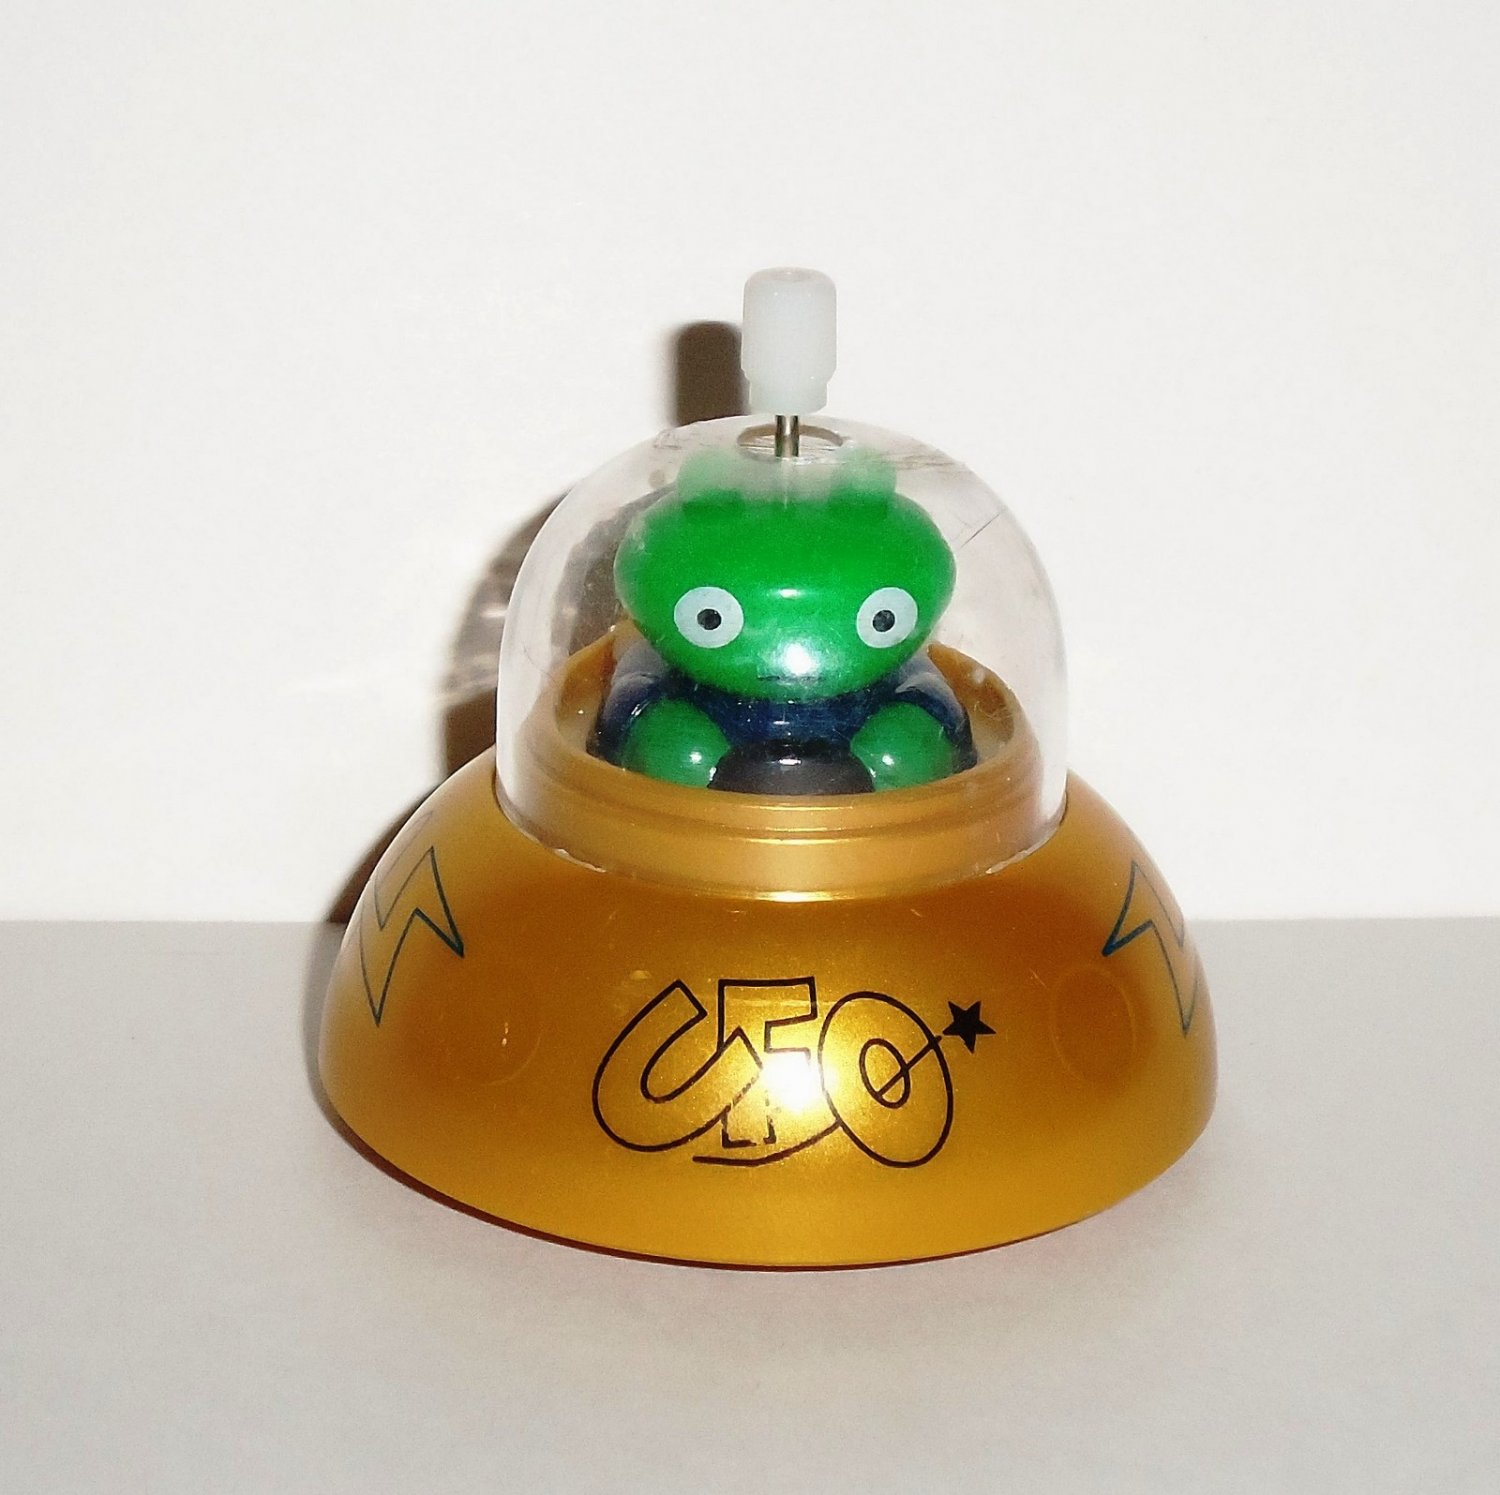 Hans No Fall Ufo Wind Up Toy Gold Flying Saucer Loose Used